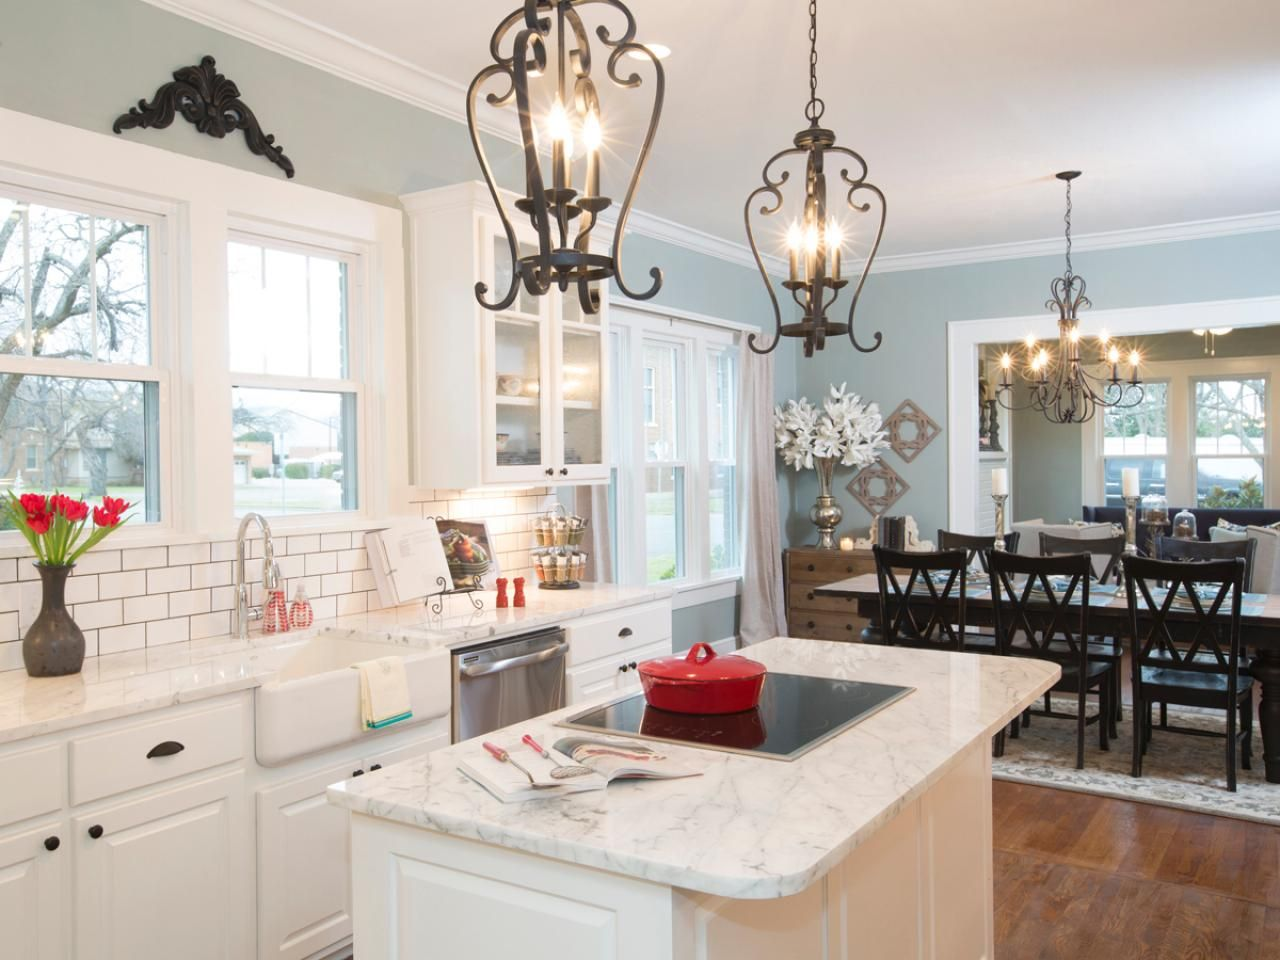 Fixer upper kitchen pendants - Lights